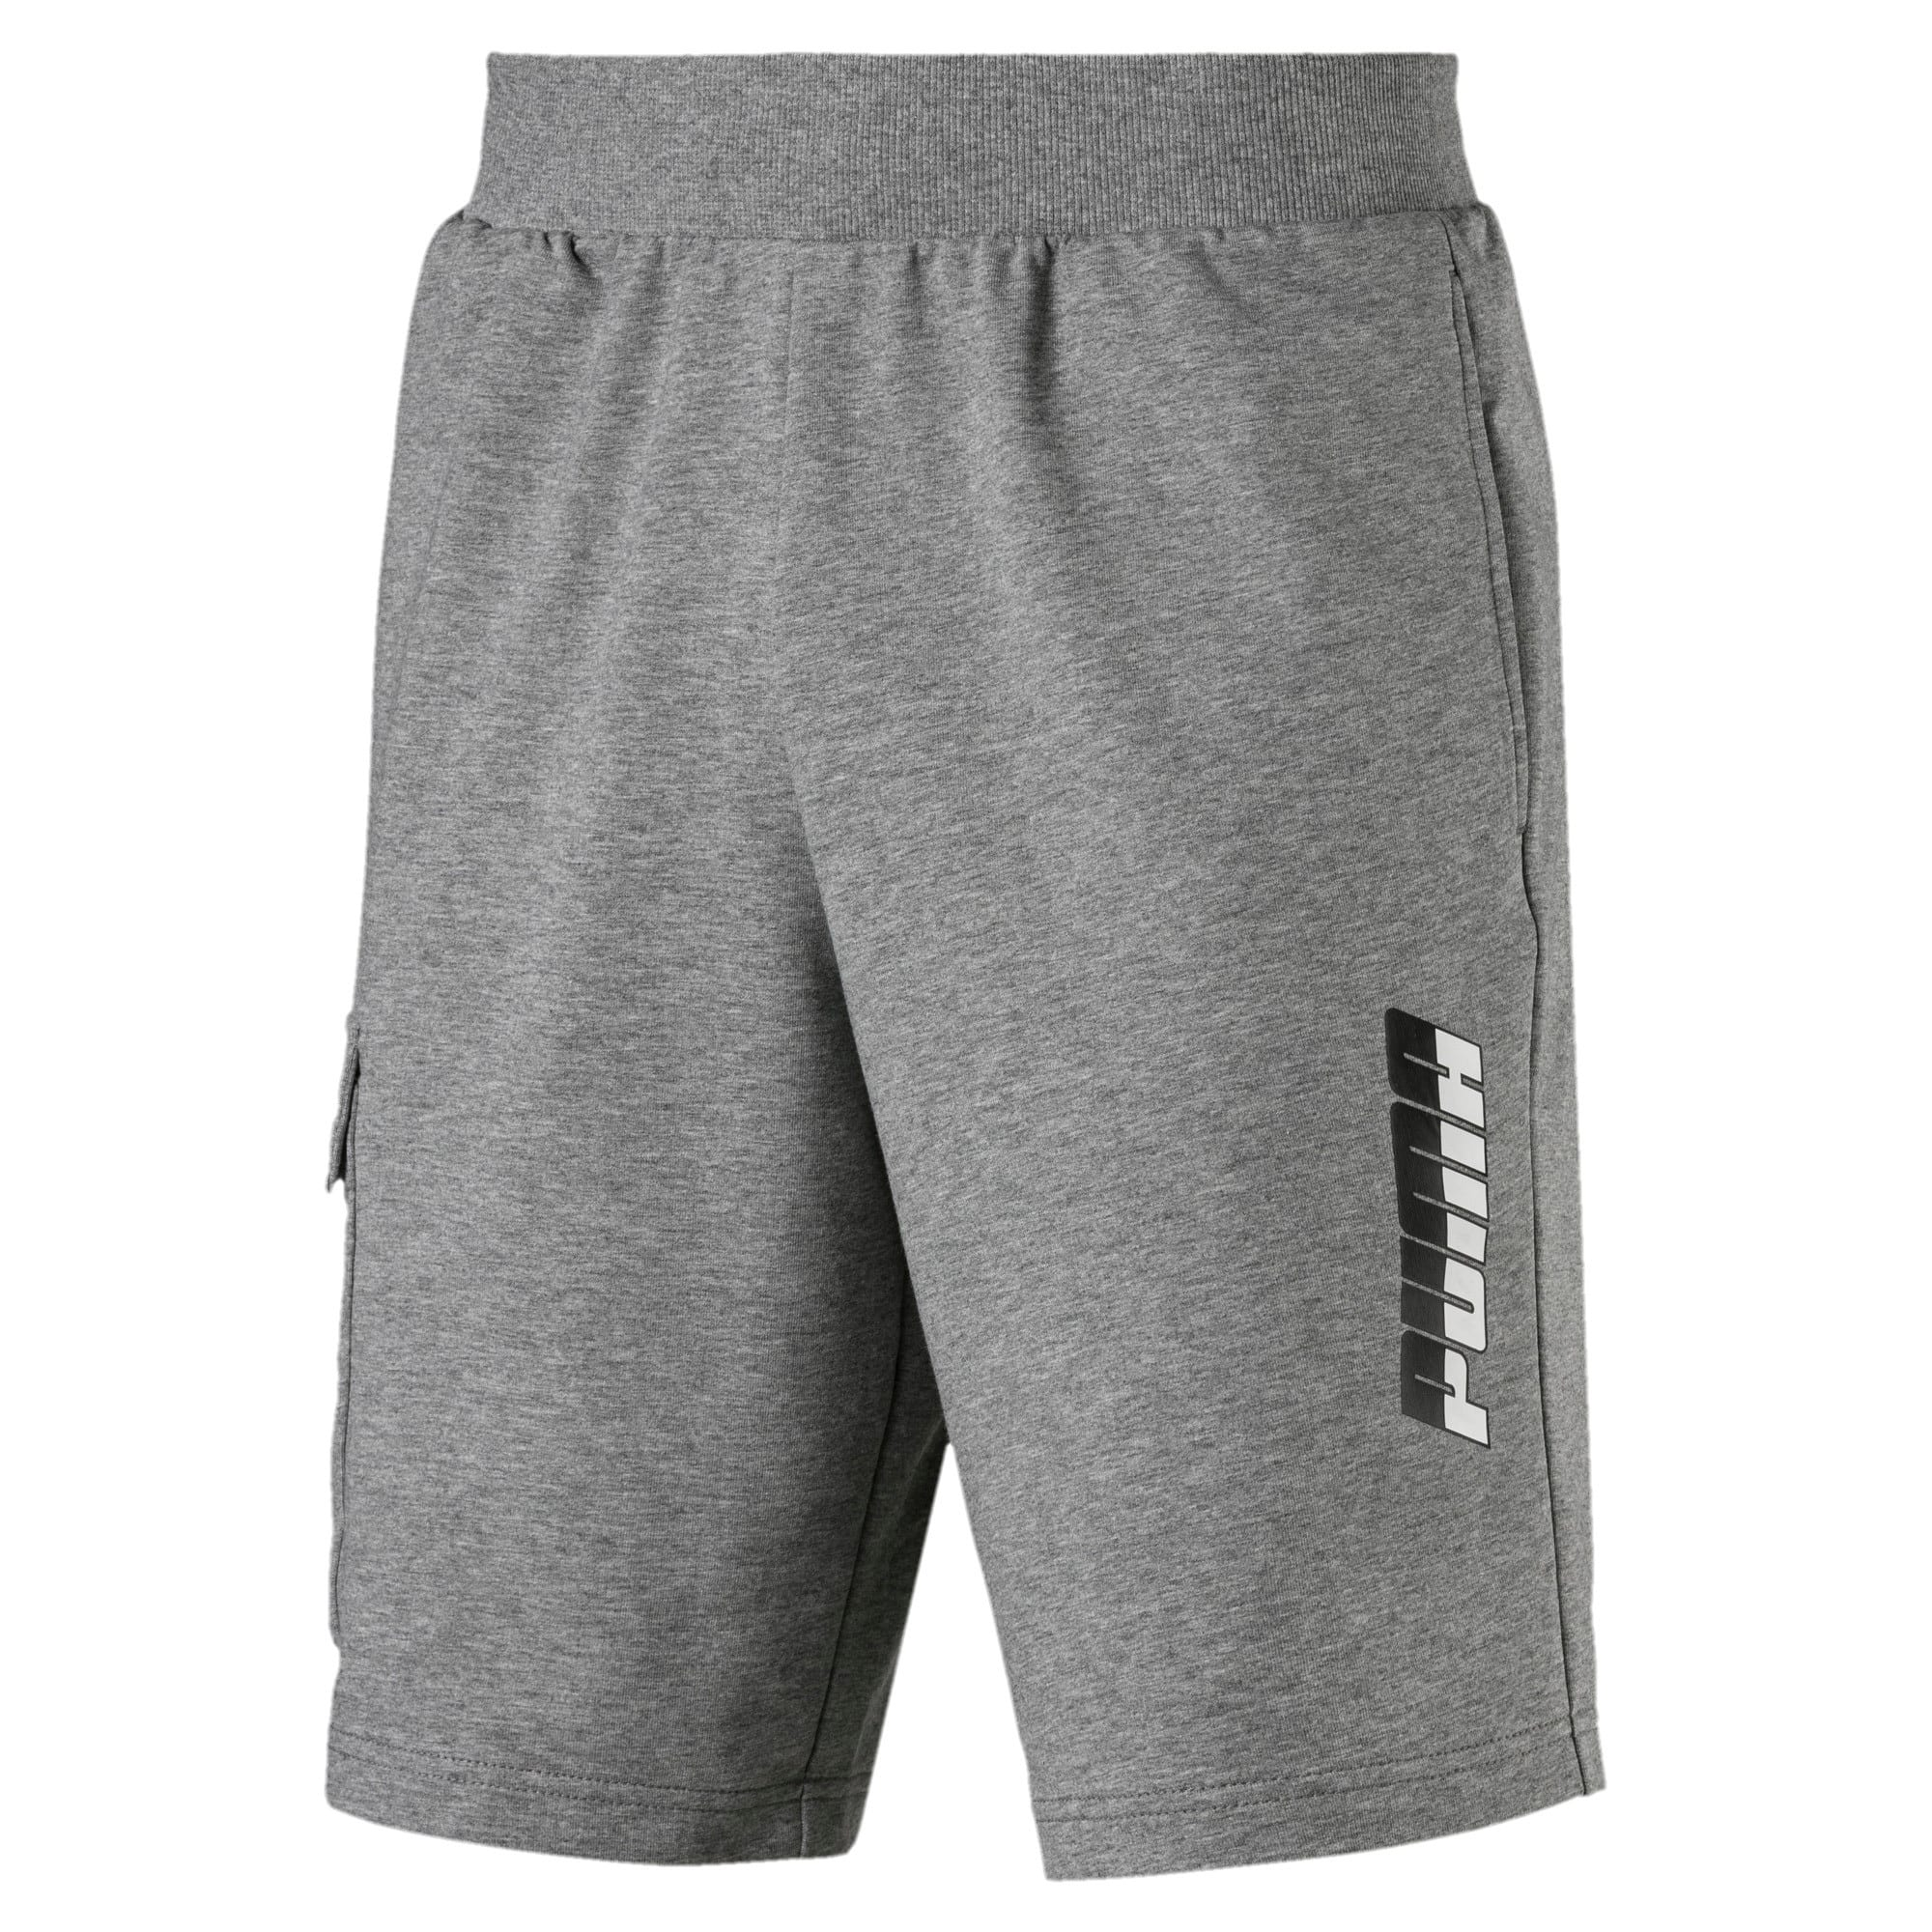 "Thumbnail 1 of Rebel Men's 9"" Shorts, Medium Gray Heather, medium"